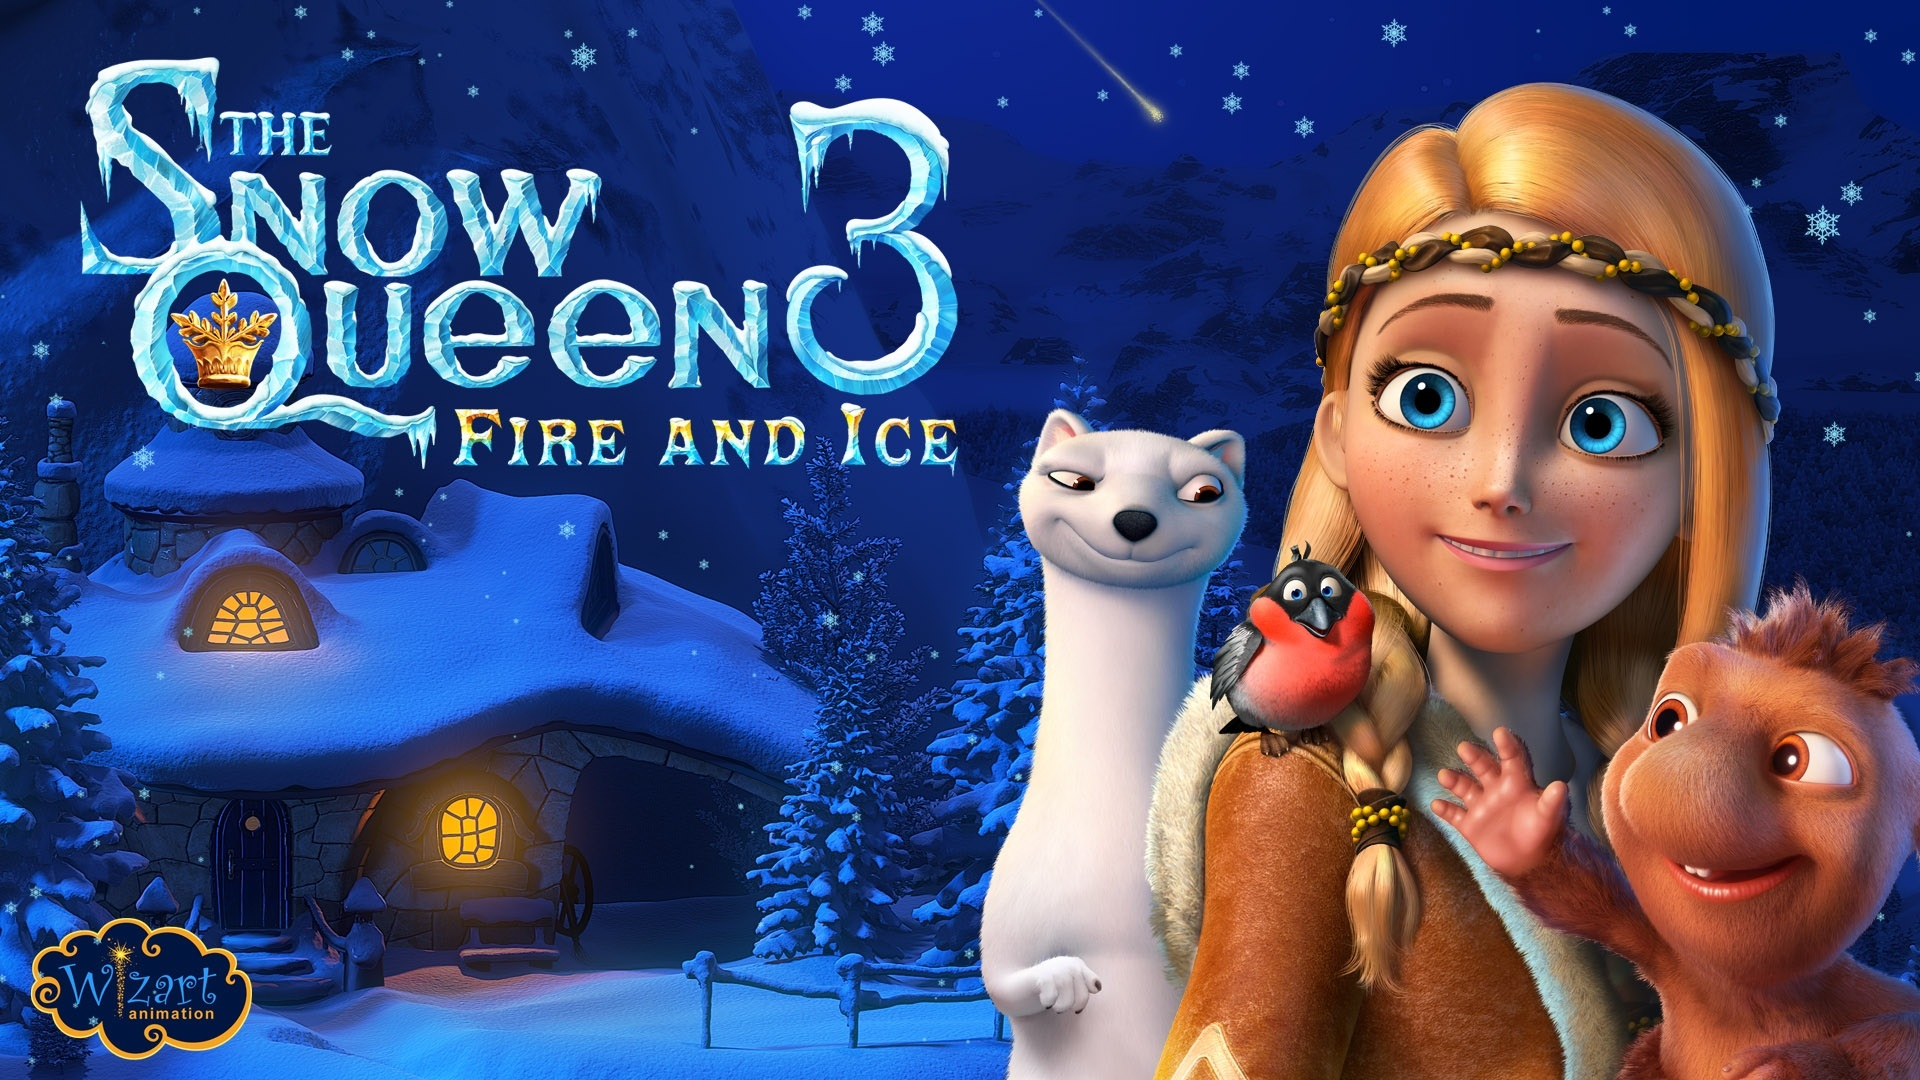 Wallpaper The Snow Queen 3 Fire And Ice 1920x1080 Full Hd 2k